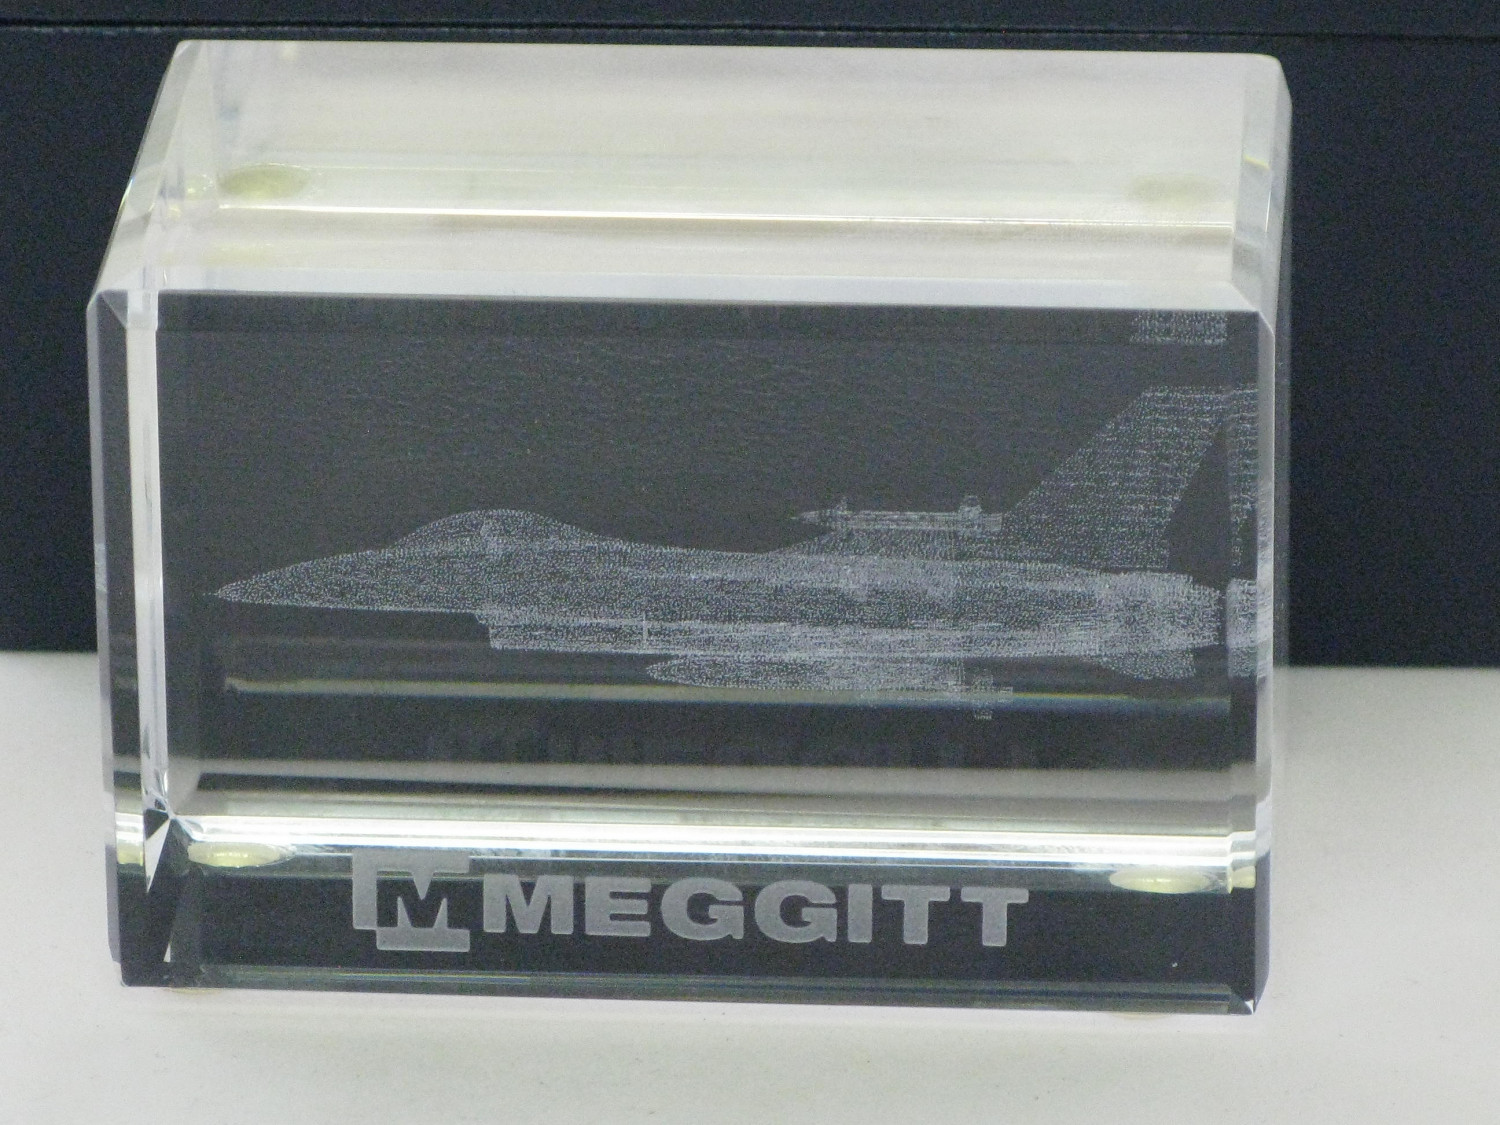 Engraved Glass Promotional item from Meggitt Systems.